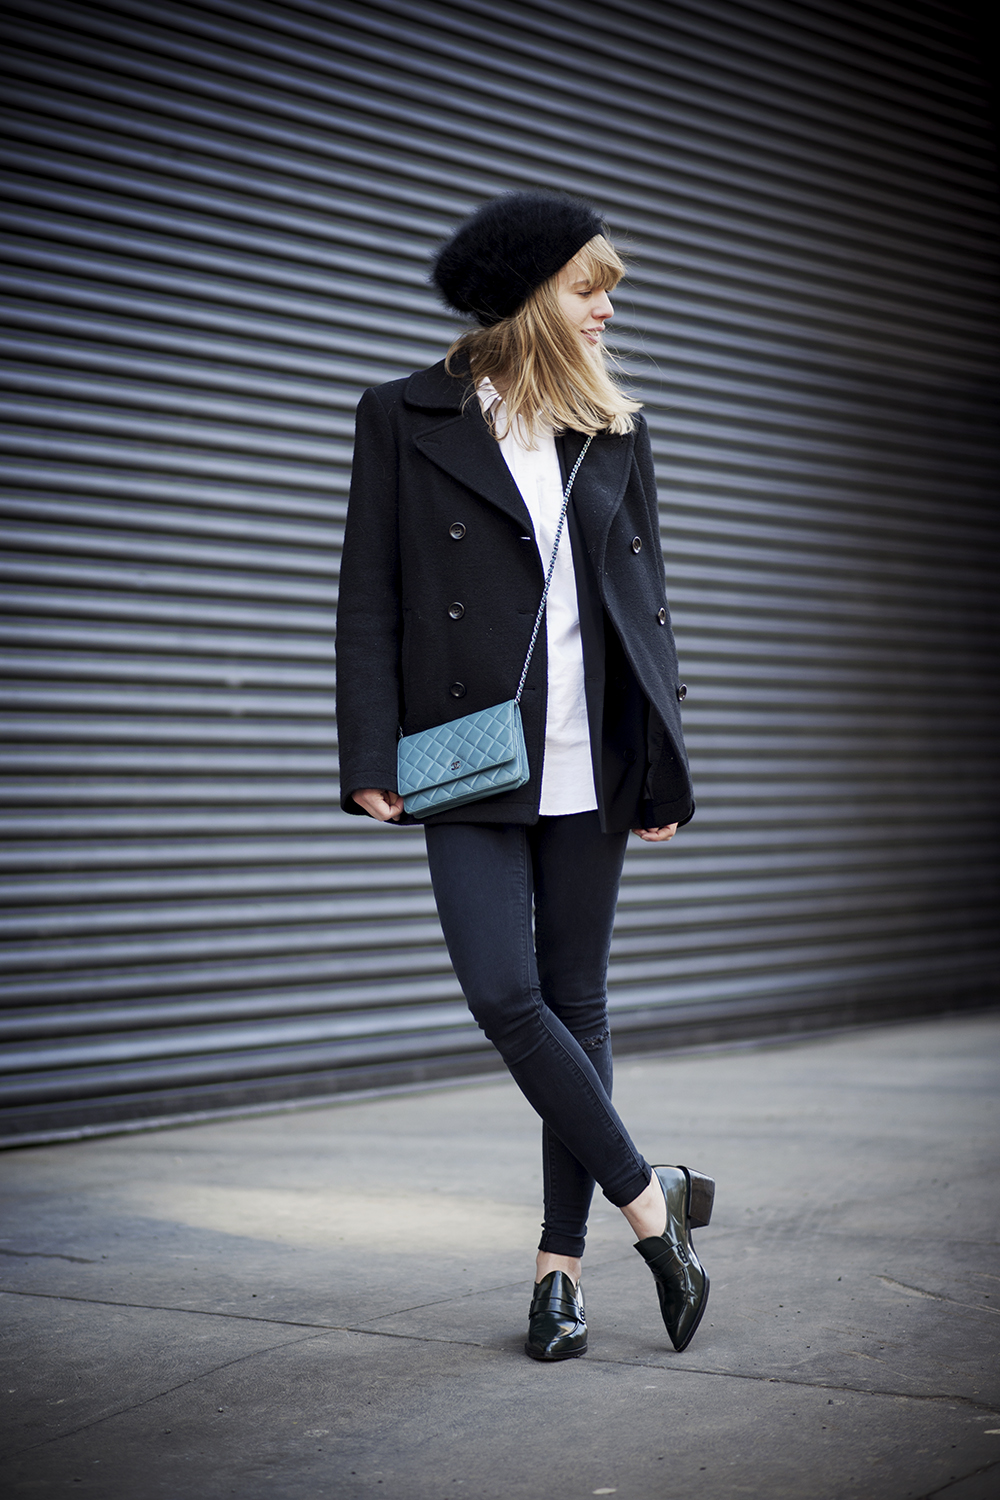 SIMPLICITY | Just Another Fashion Blog